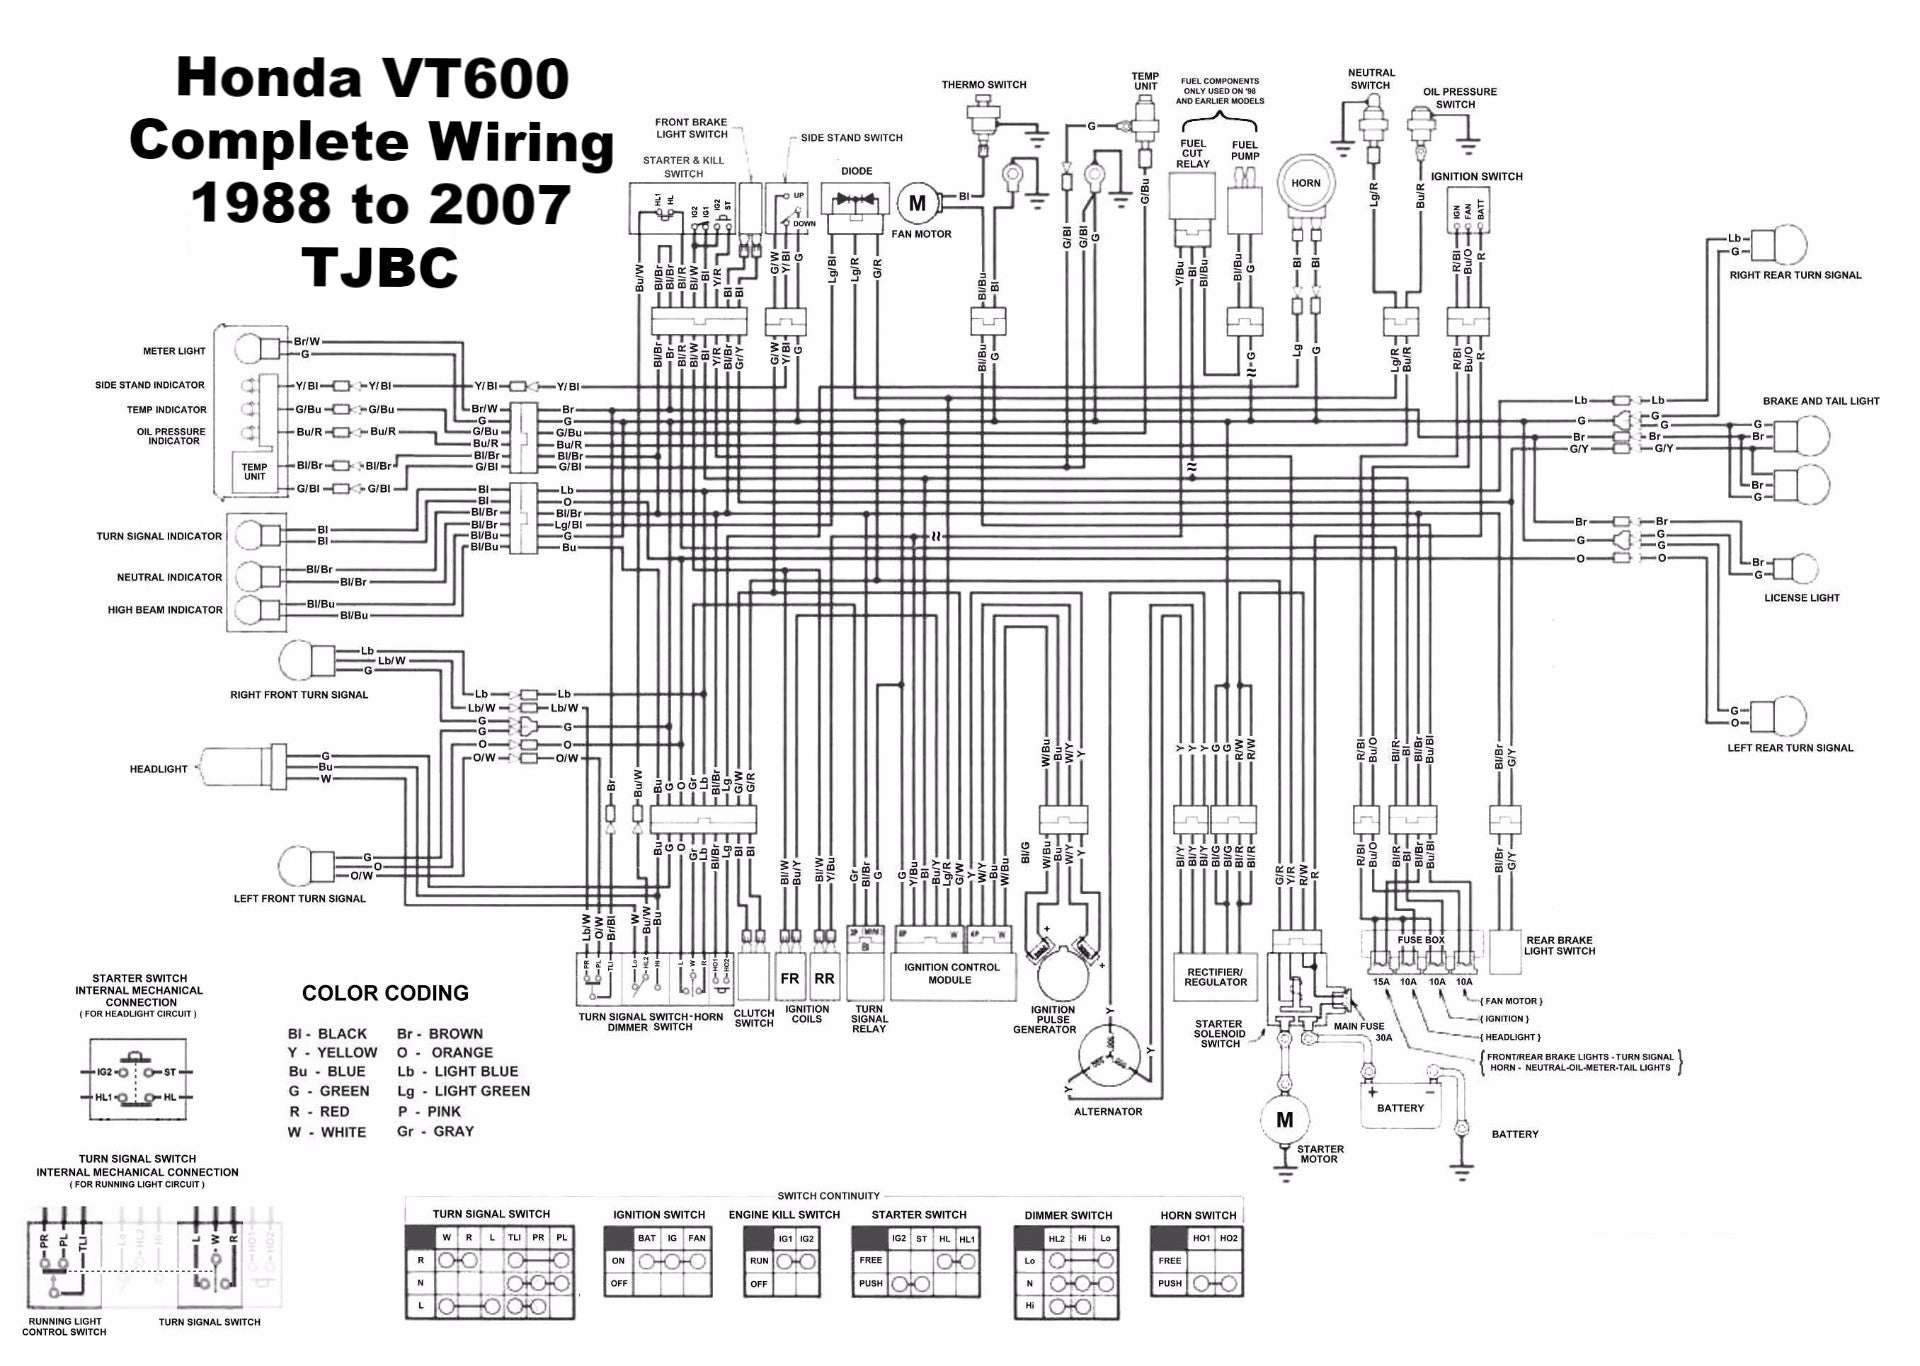 Honda VT750 ACE Wiring Diagram 1998-2000